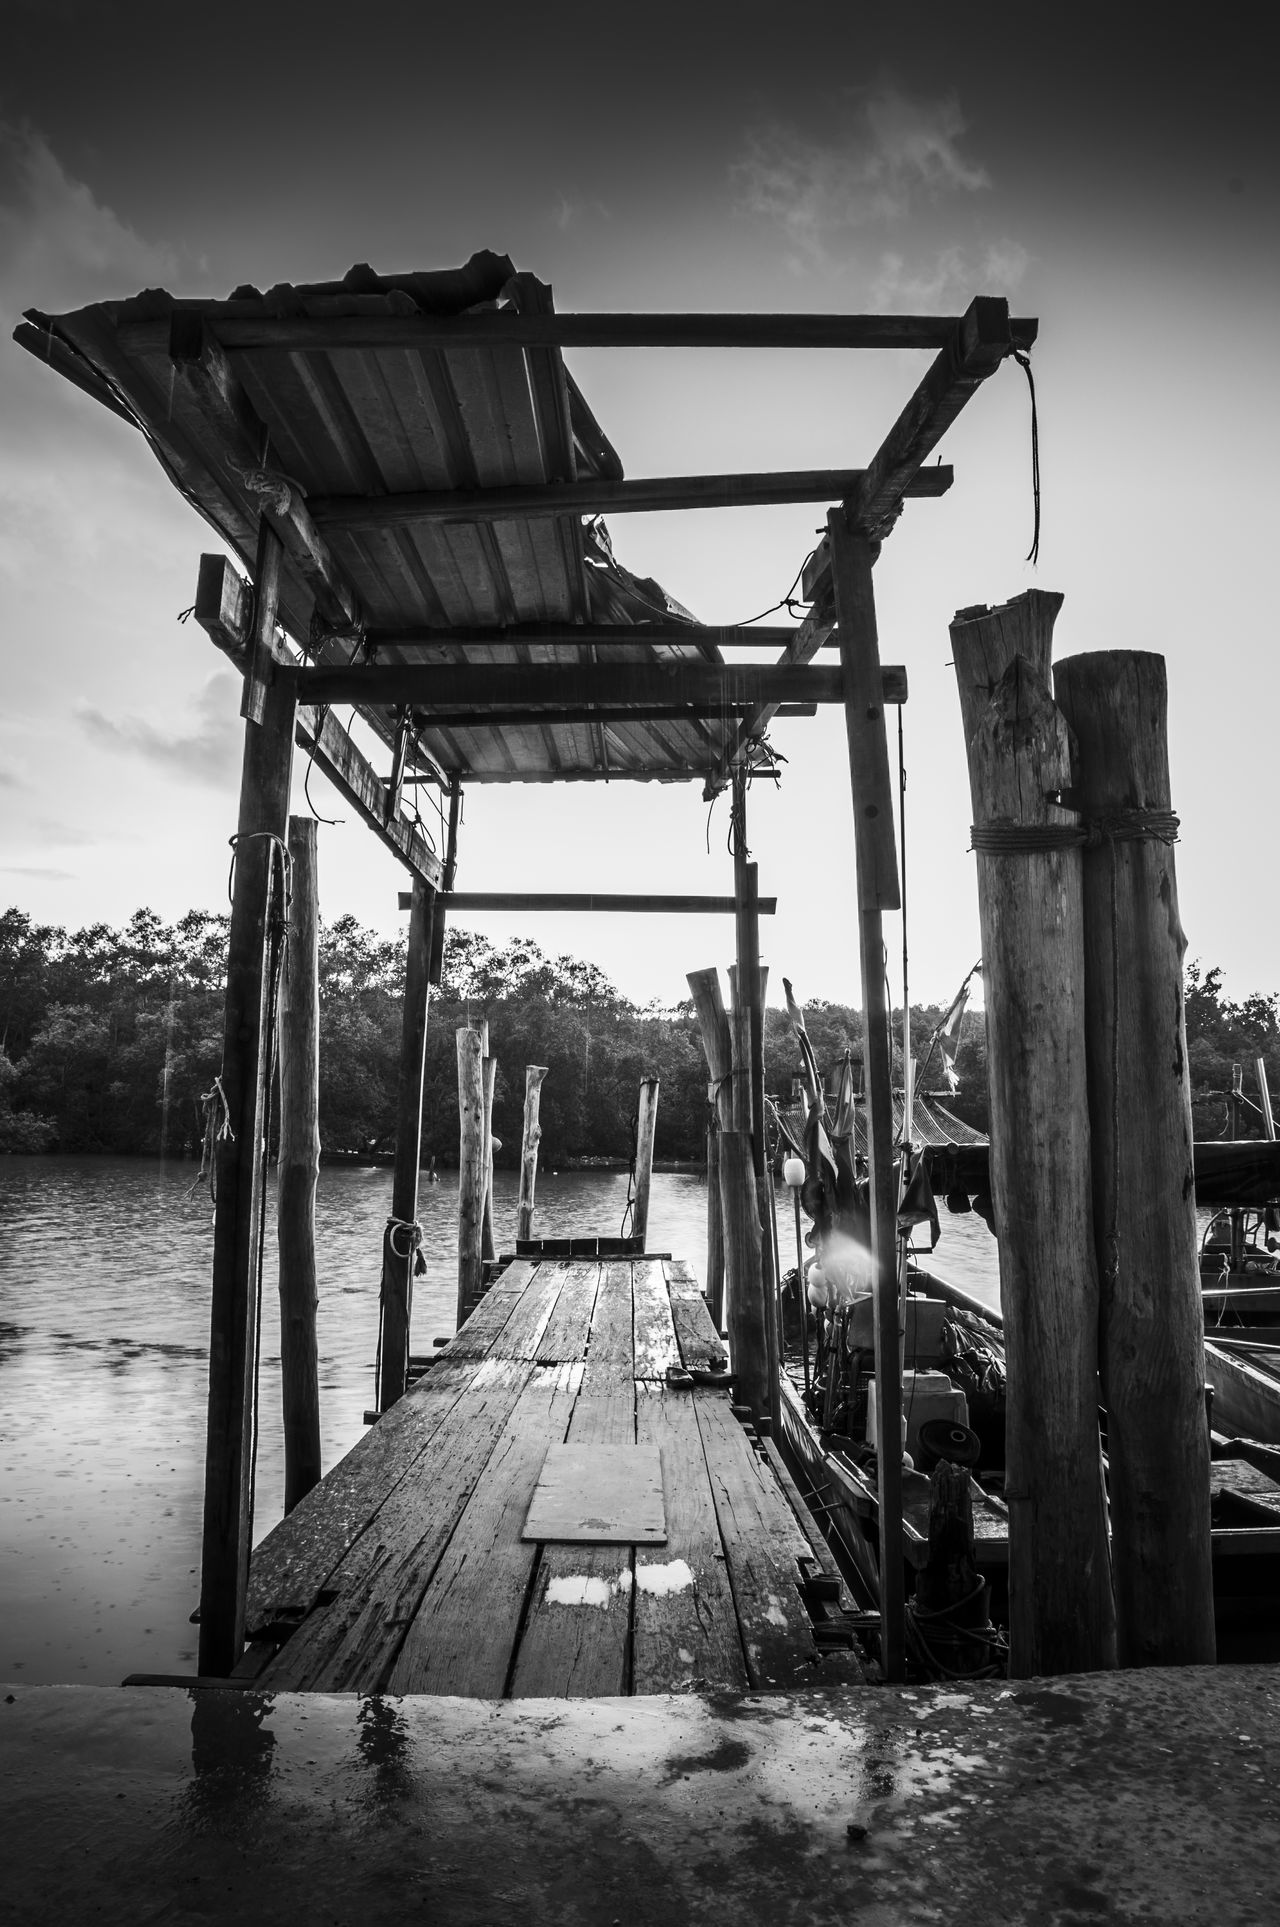 Black & White Photography Black And White Photography Calmness Clouds And Sky Day Fishermanvillage Getty Images Gettyimages Jetty View Landscapes With WhiteWall Nature Old Outdoors Pier Poles Rippled Water Ripples Seascapes Serenity Tranquil Scene Tranquility Water Waves Wood - Material Wooden